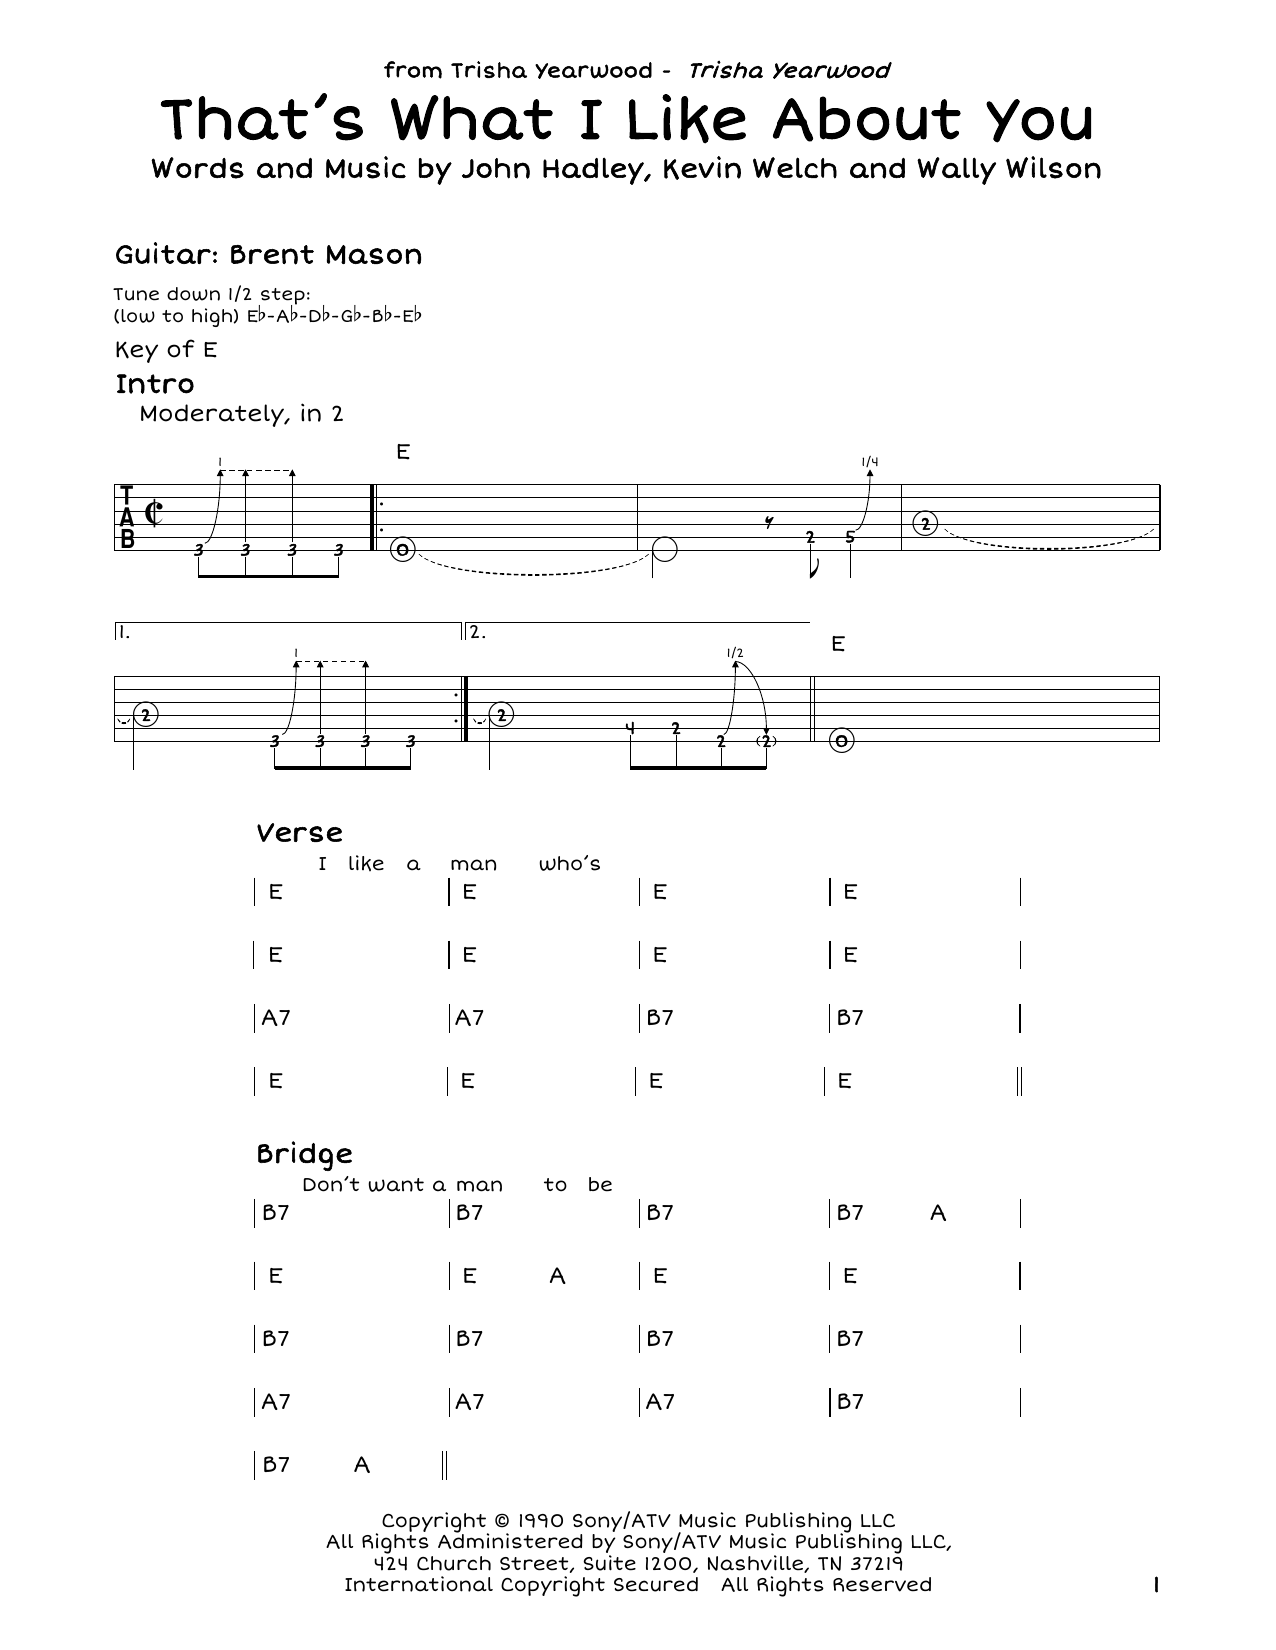 Trisha Yearwood That's What I Like About You sheet music notes and chords. Download Printable PDF.